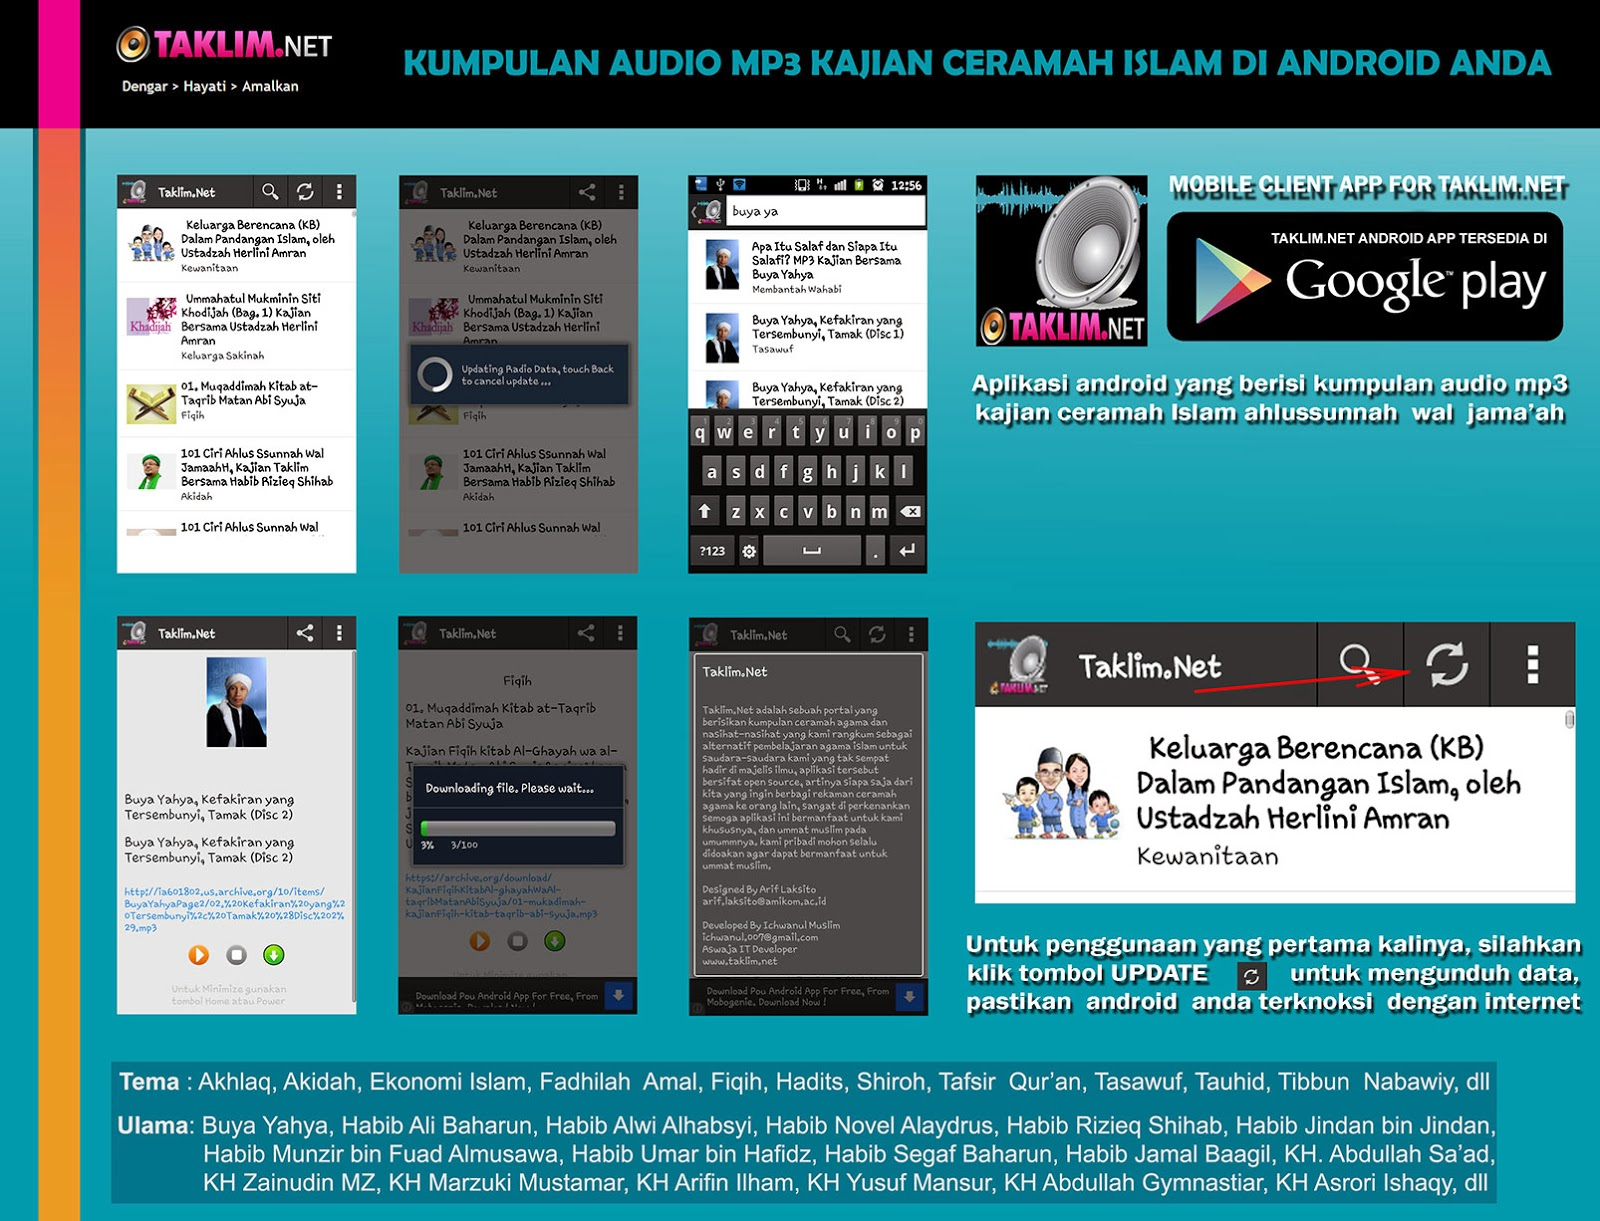 Download dan Install Aplikasi Android Islami Taklim.Net